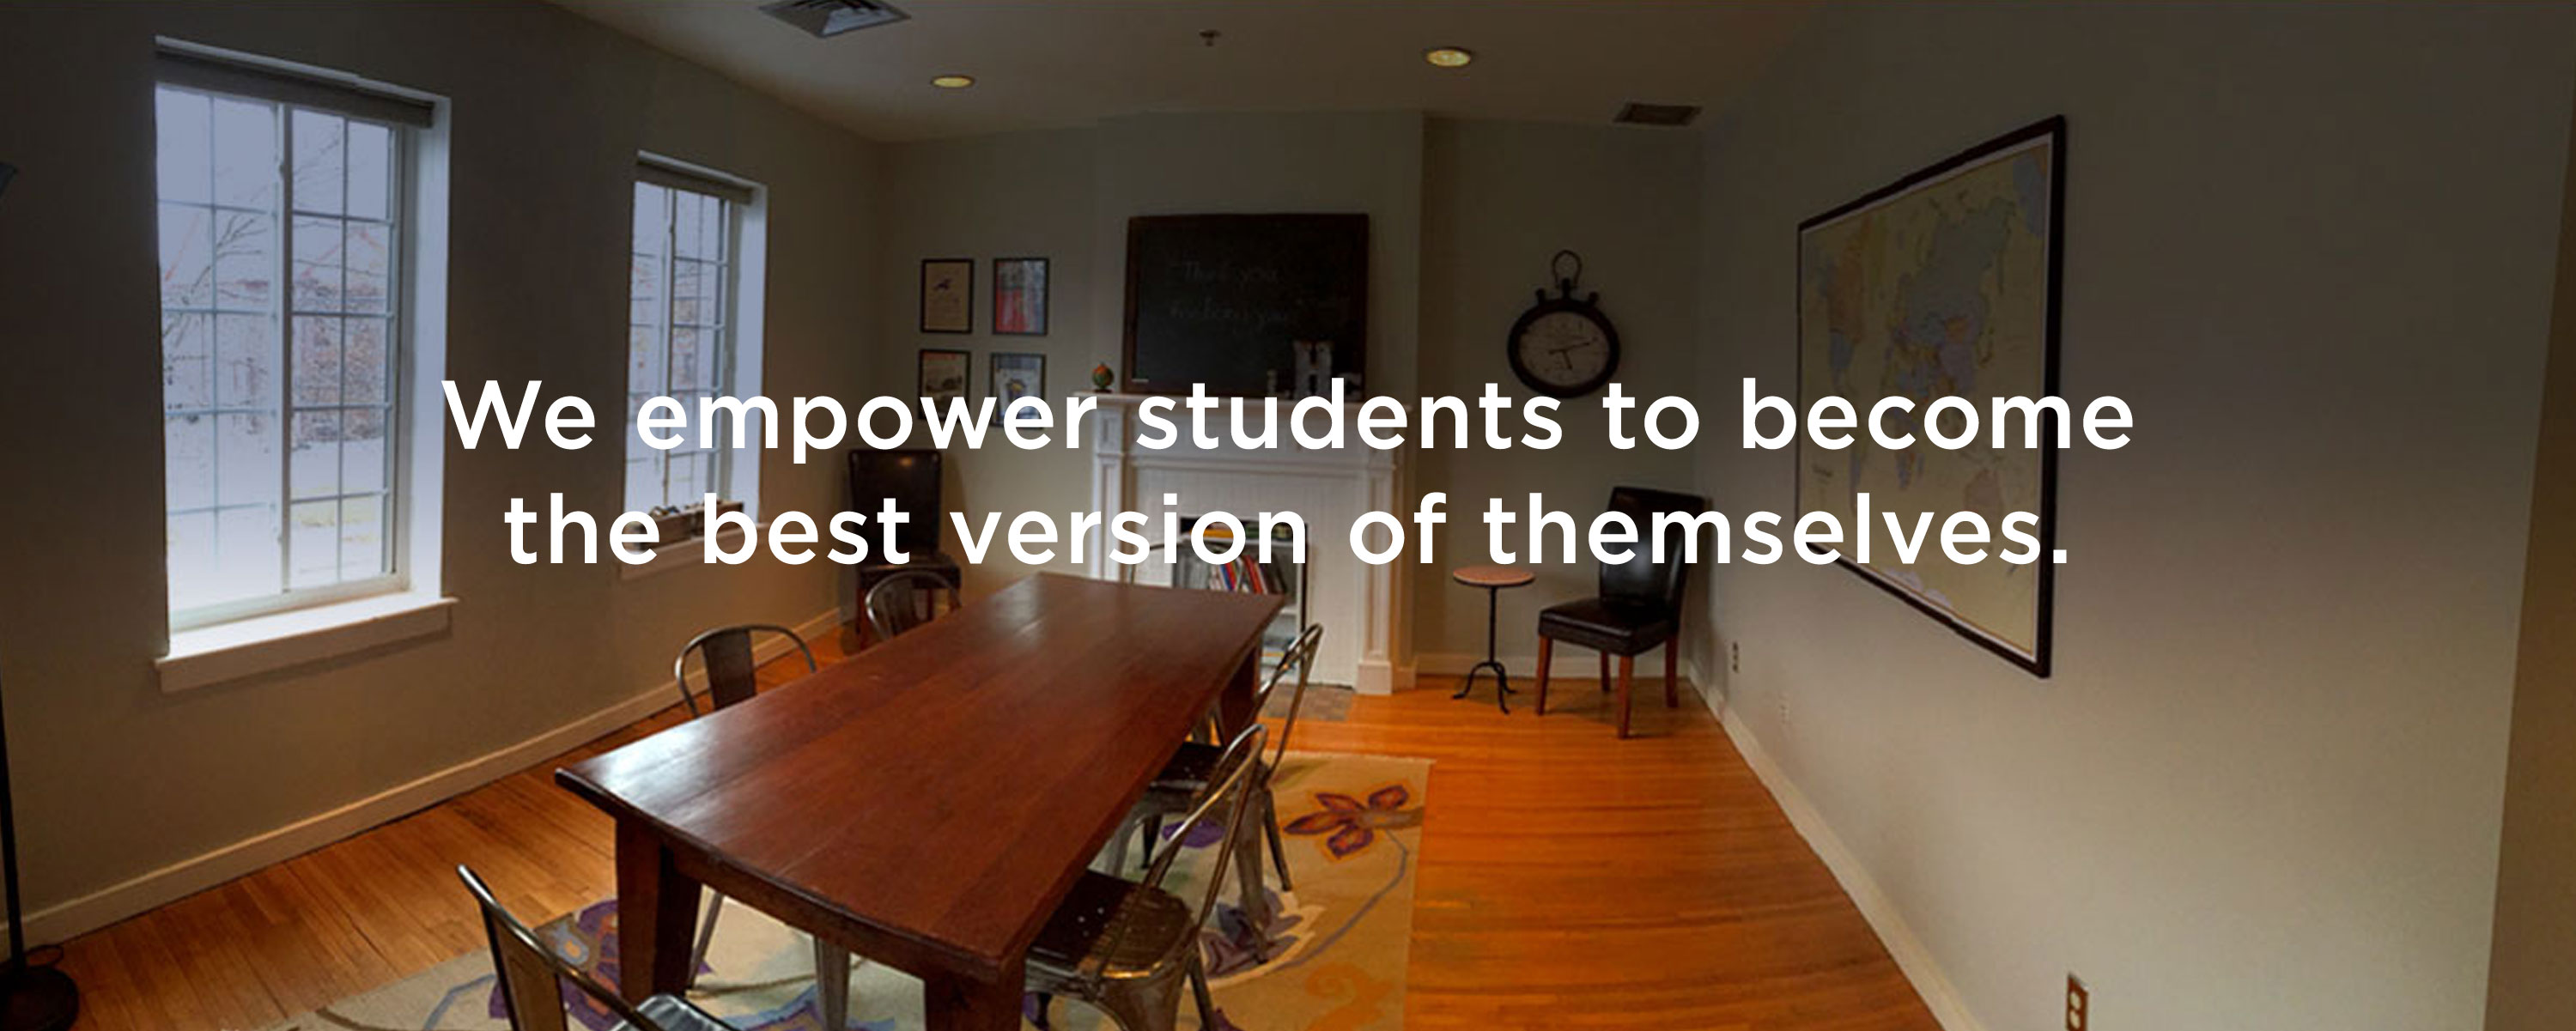 We empower students to become the best version of themselves